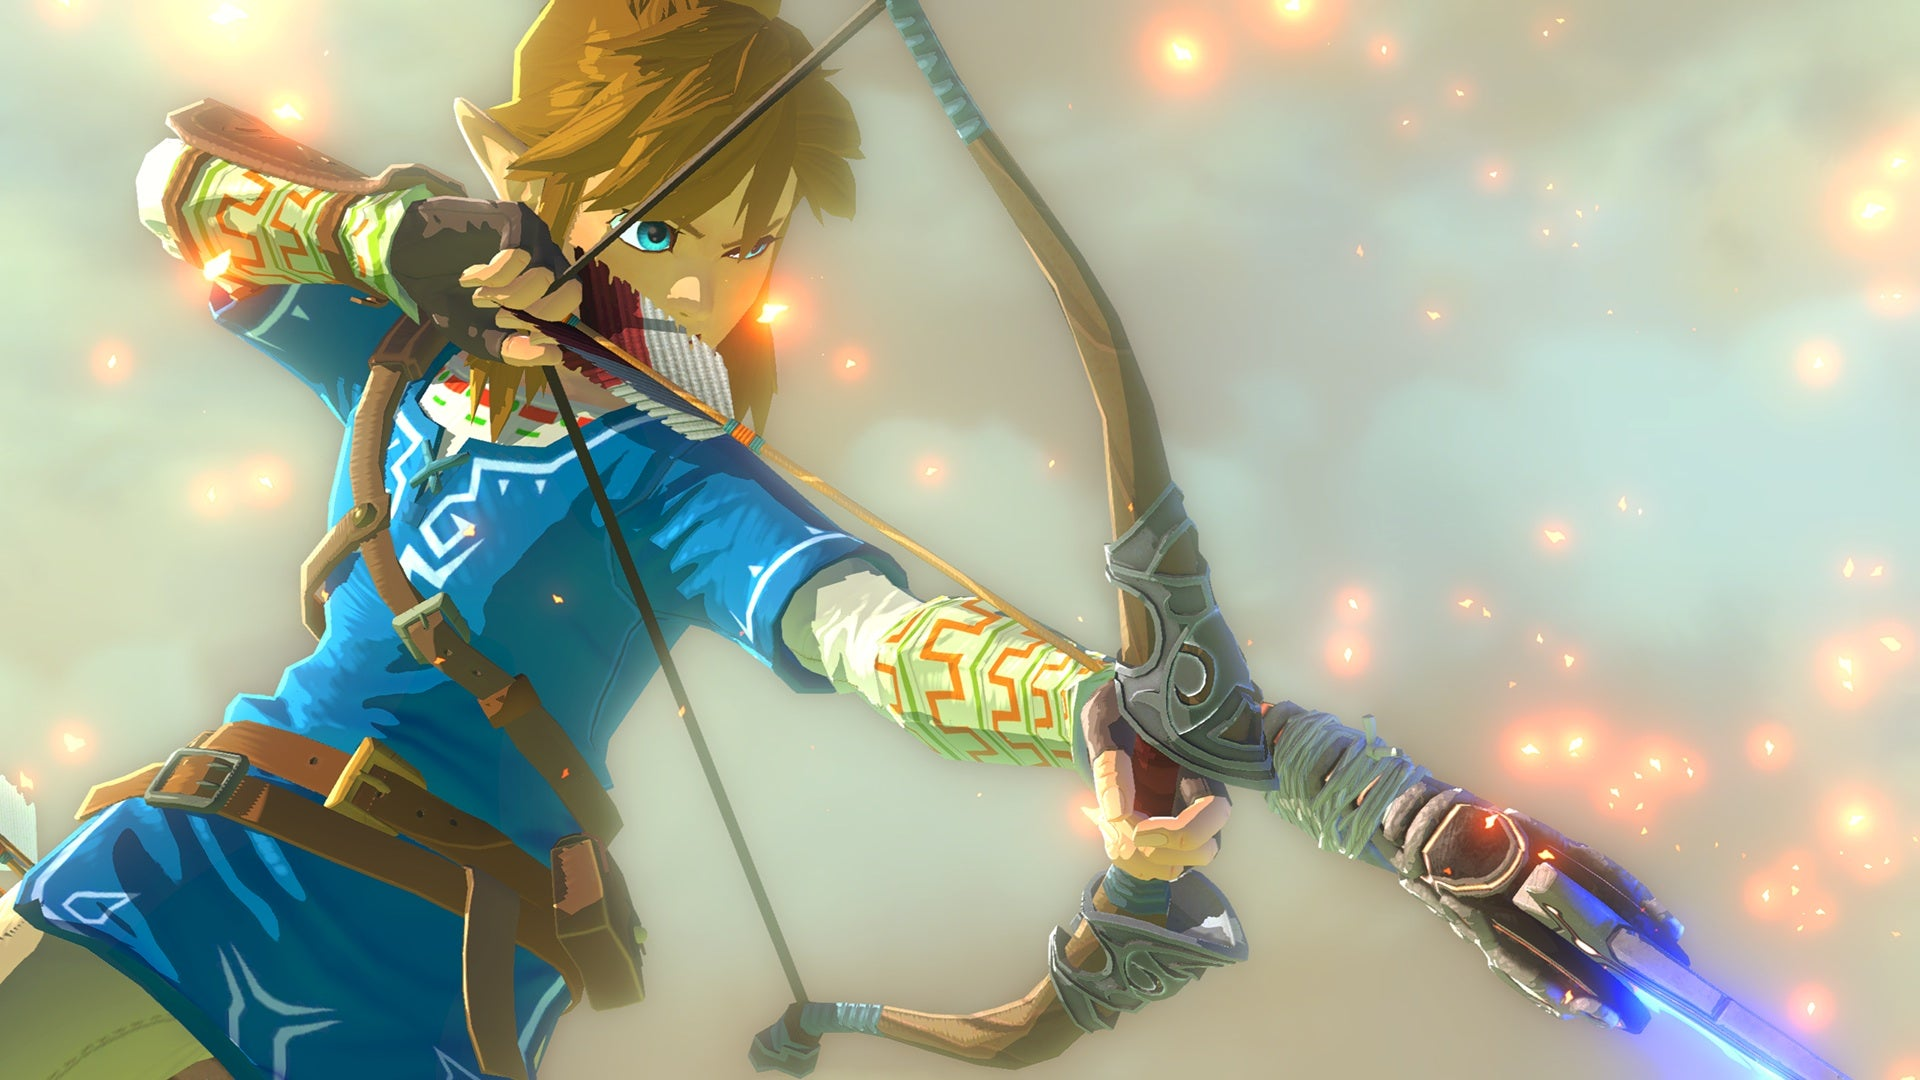 The New Legend Of Zelda Isn't Coming Out This Year Either